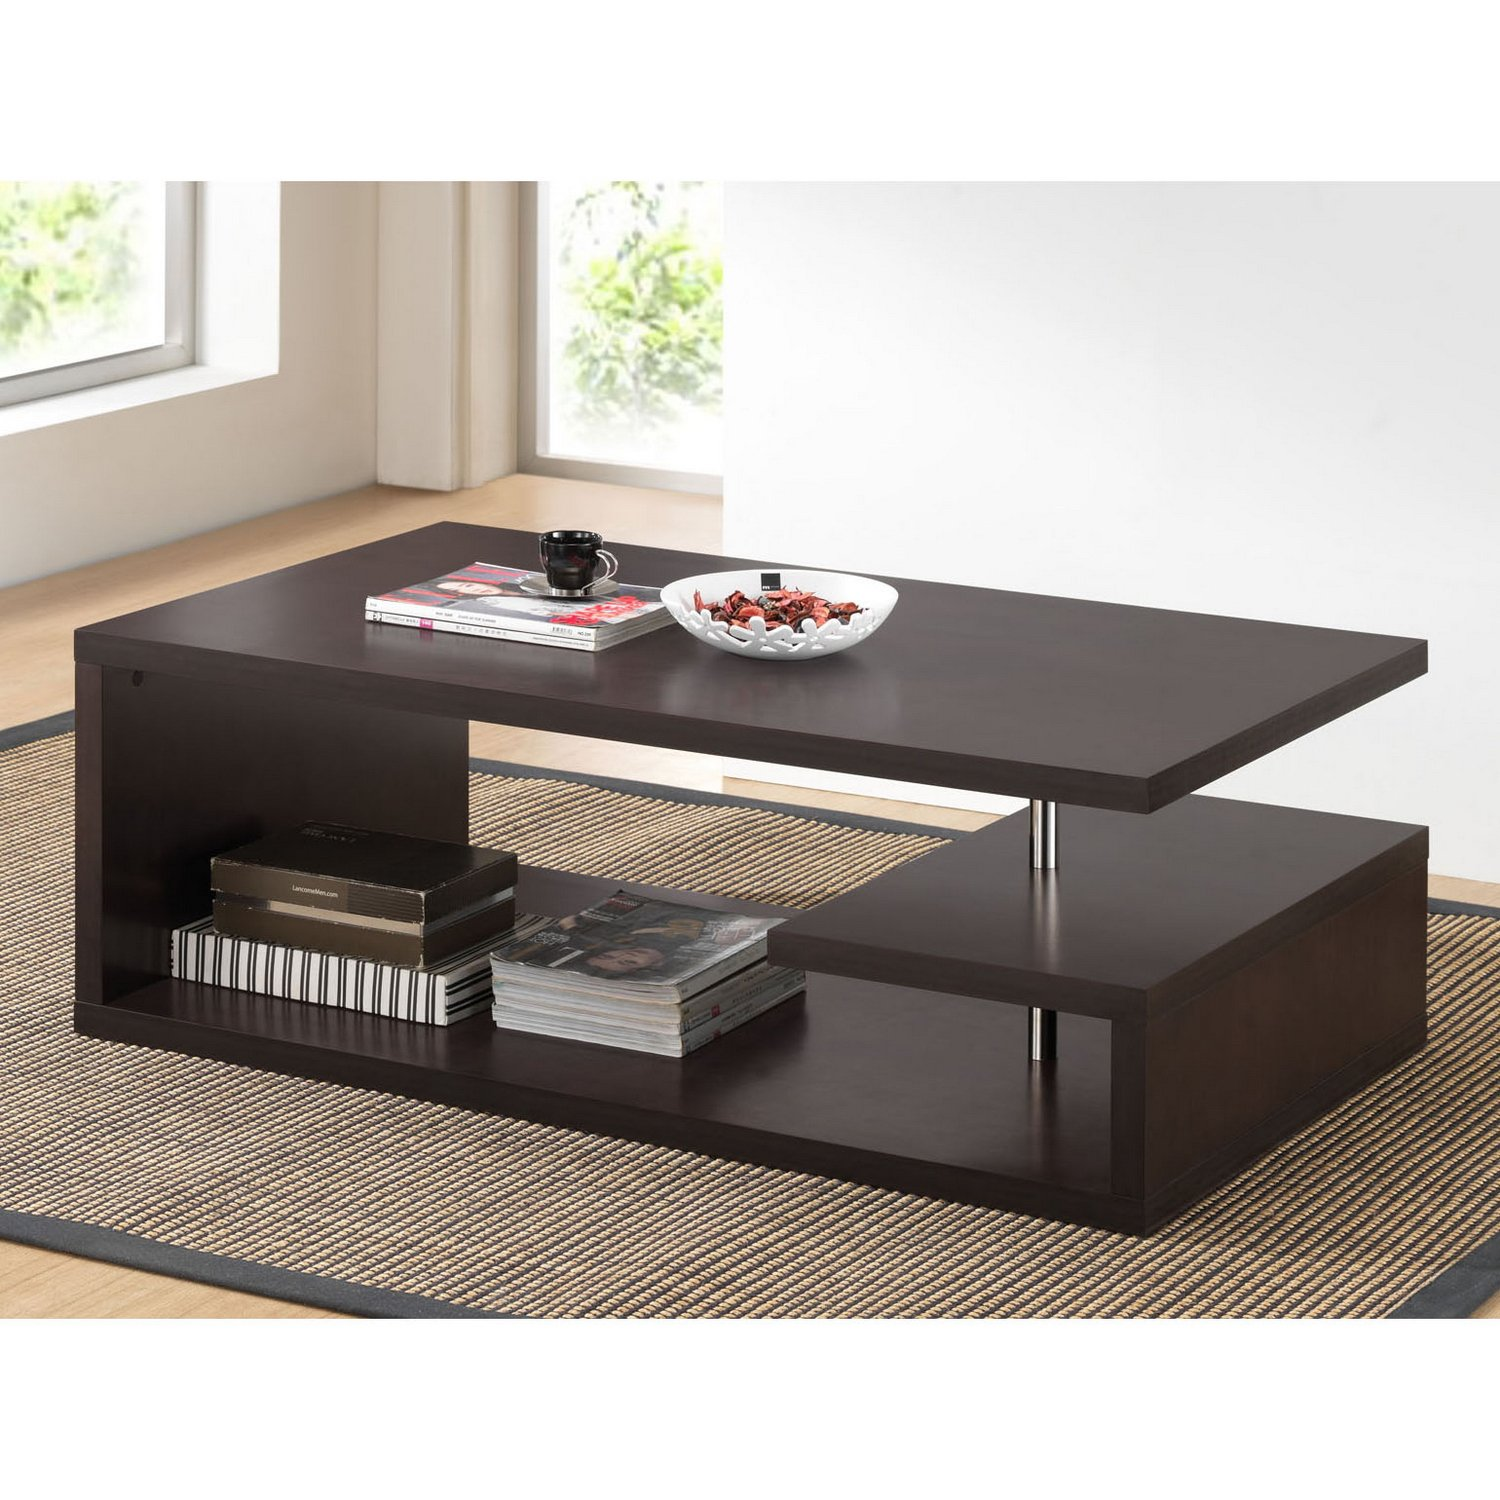 Genial Amazon.com: Baxton Studio Lindy Modern Coffee Table, Dark Brown: Kitchen U0026  Dining